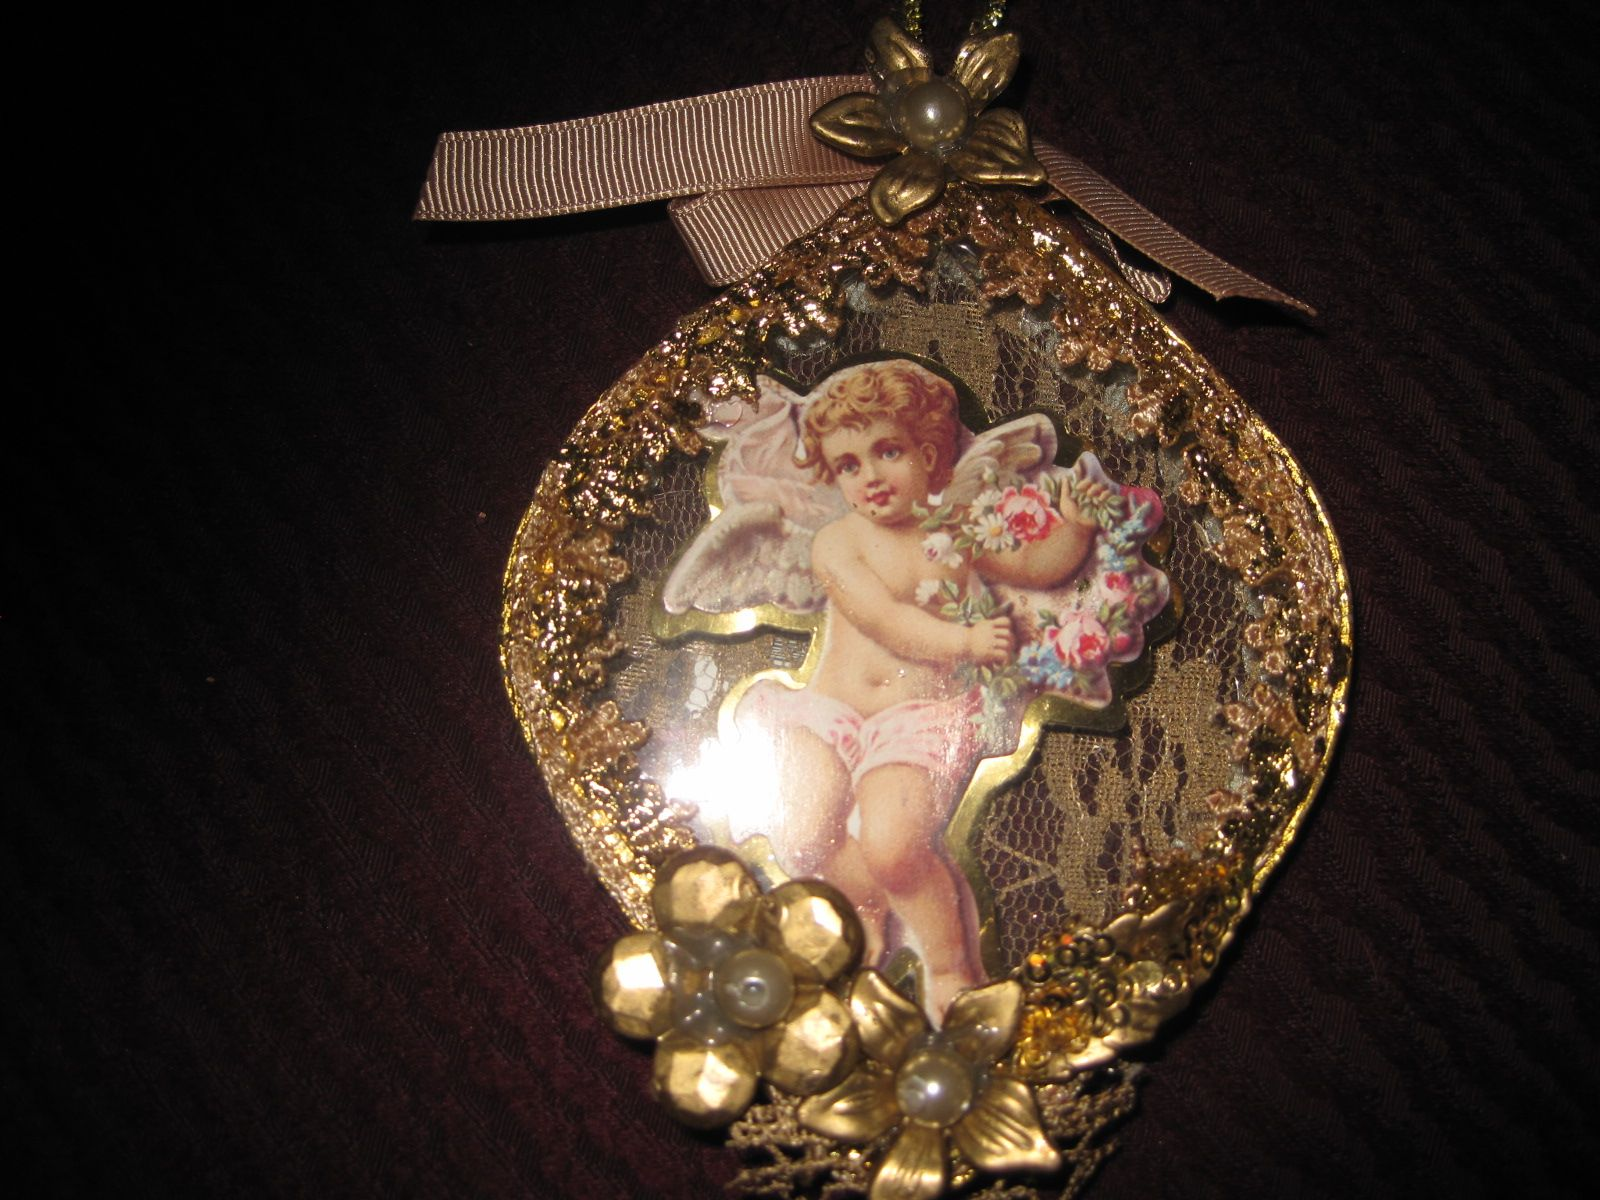 LOVE THESE! absolutely beautiful. glass ornament with cherub inside. Lace and jewels embellish these.